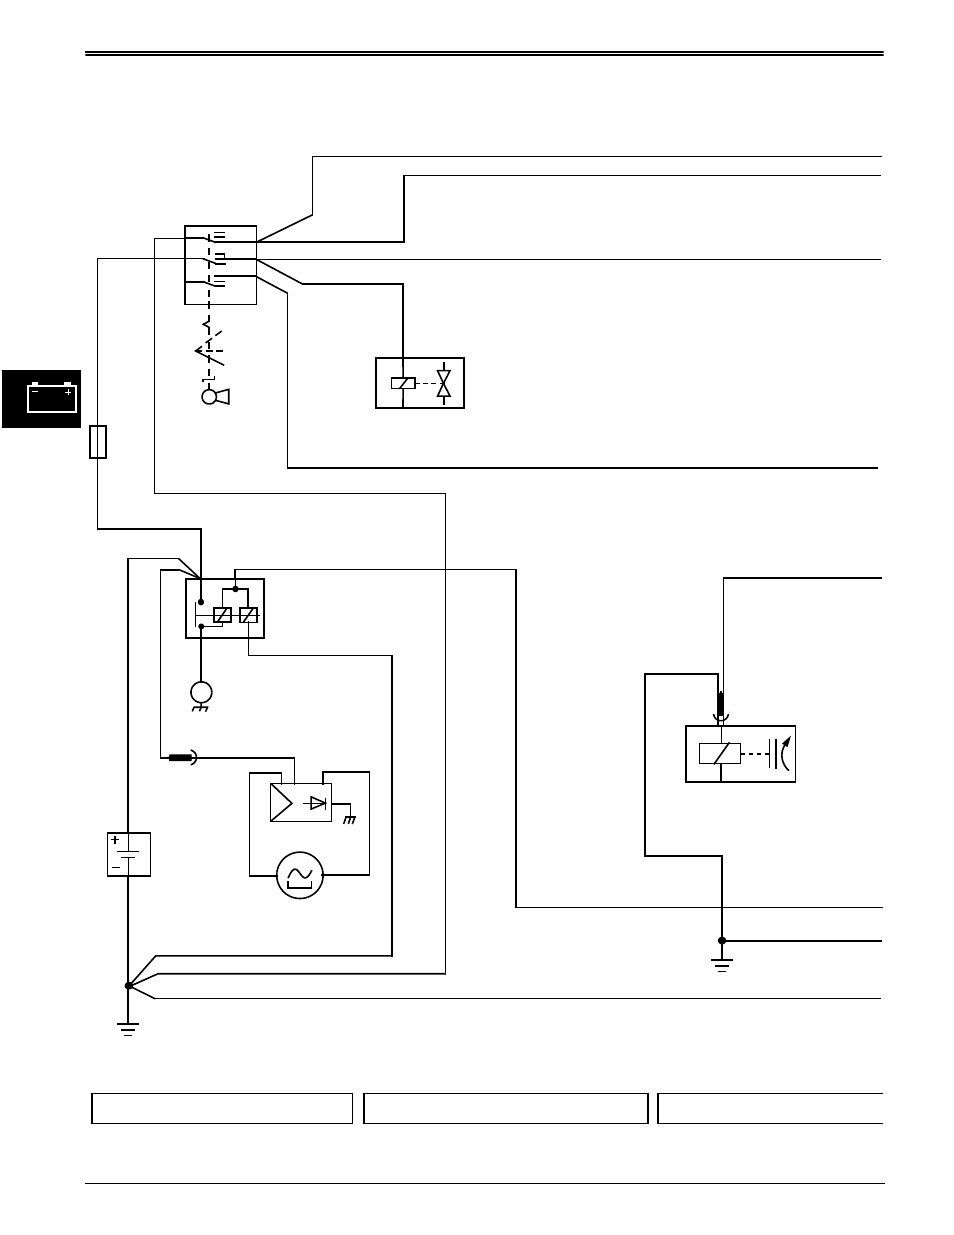 medium resolution of wiring schematics john deere stx38 user manual page 108 314john deere stx 46 wiring schematic